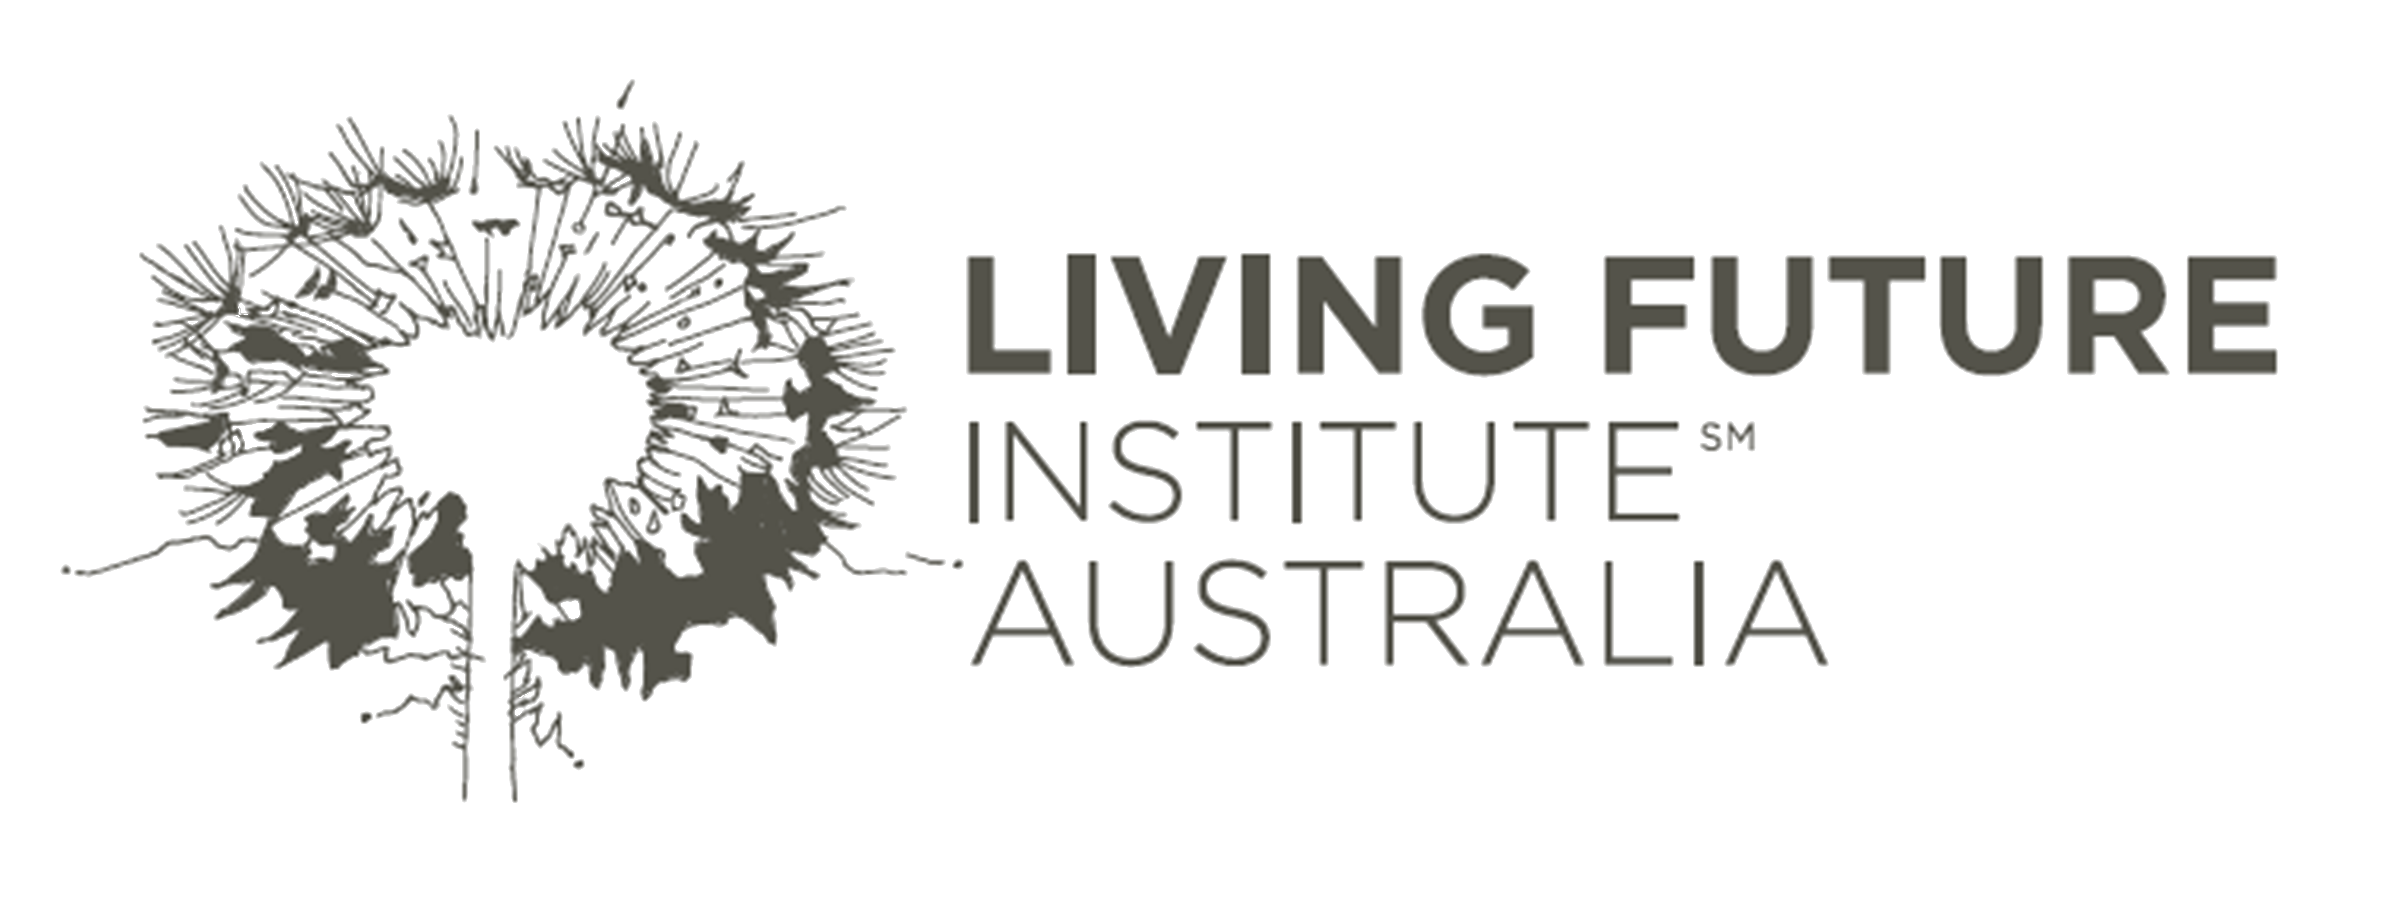 Living Future Institute of Australia